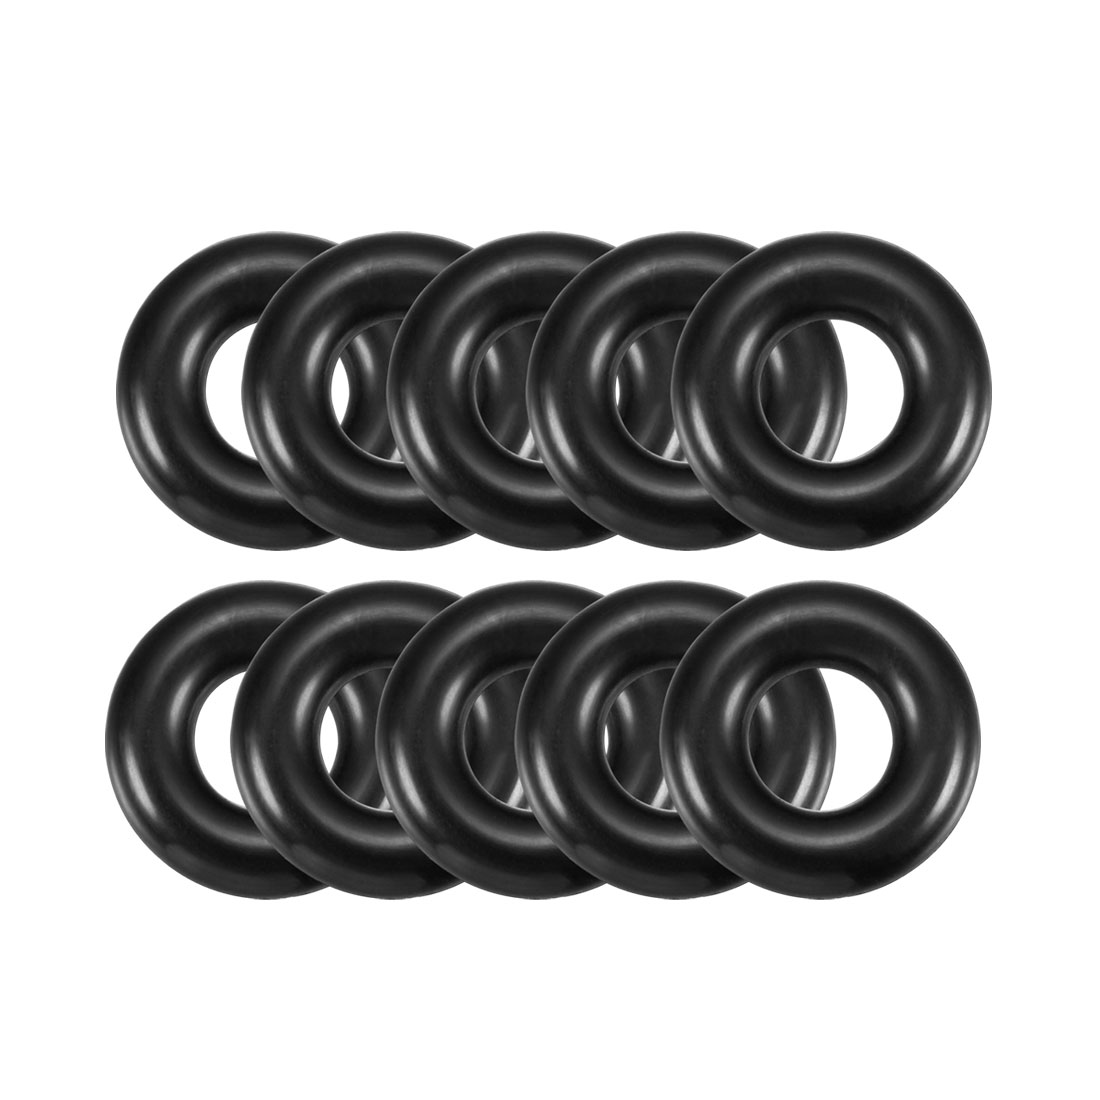 5mm x 18mm Black Nitrile Rubber Sealing O Ring Seal Washer Grommets 10 Pcs